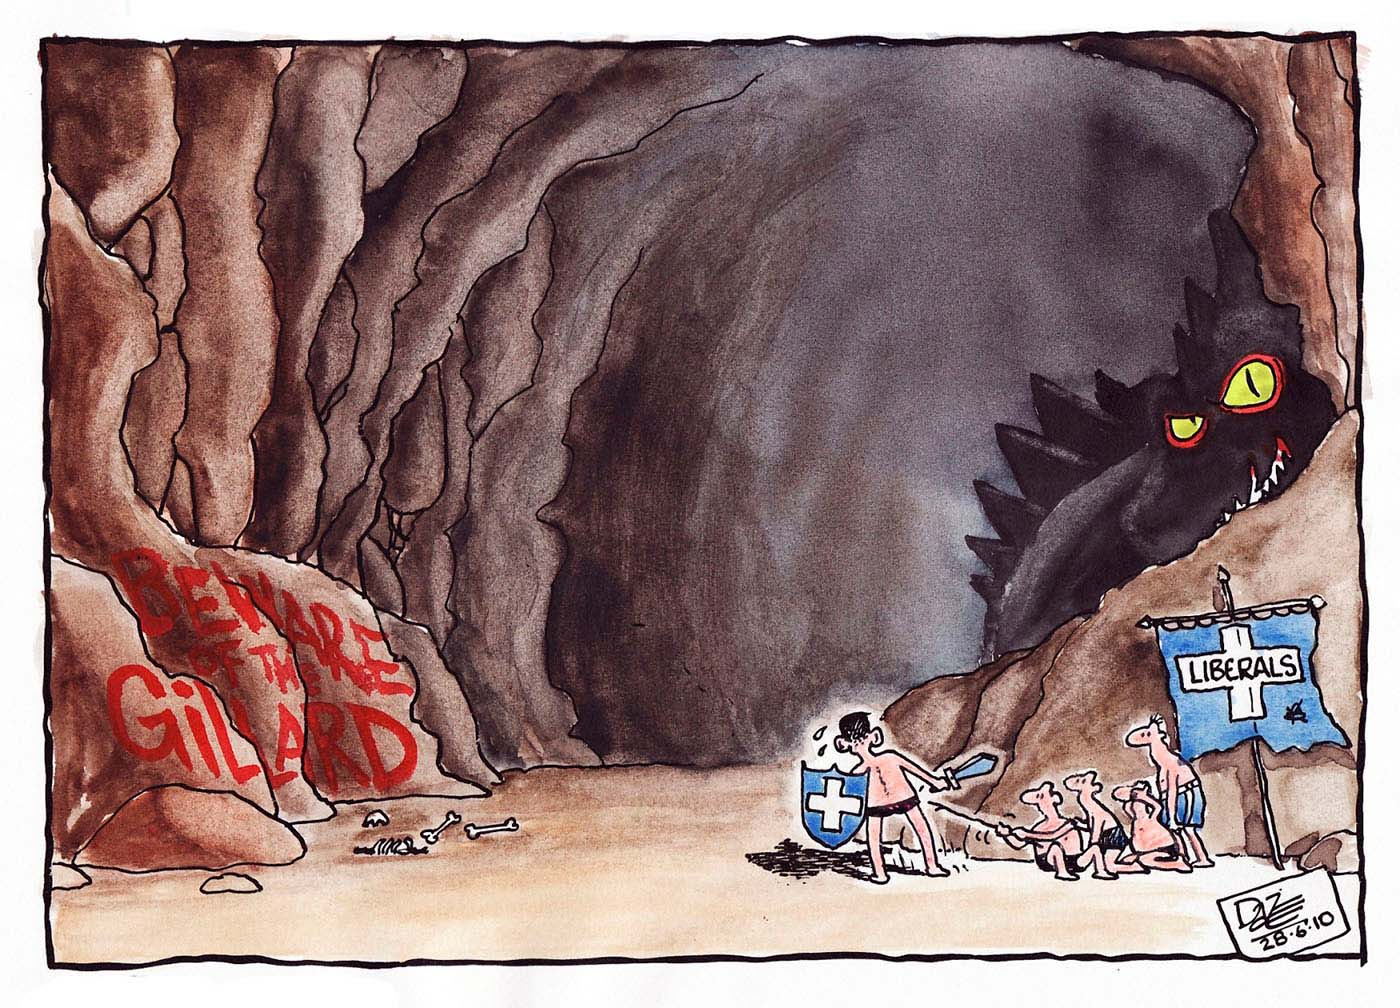 A colour cartoon depicting the entrance to a large cave. At left of the entrance, written on a rockface, is 'Beware the Gillard'. At right of the entrance is a small group of men, wearing only shorts. They have a tattered banner that says 'Liberals'. One of them carries a sword and a shield, and is being forced into the cave by the other men. He looks most reluctant. In the shadows of the cave can be seen a massive dragon-like monster, with a spiny back and large yellow menacing eyes.  - click to view larger image